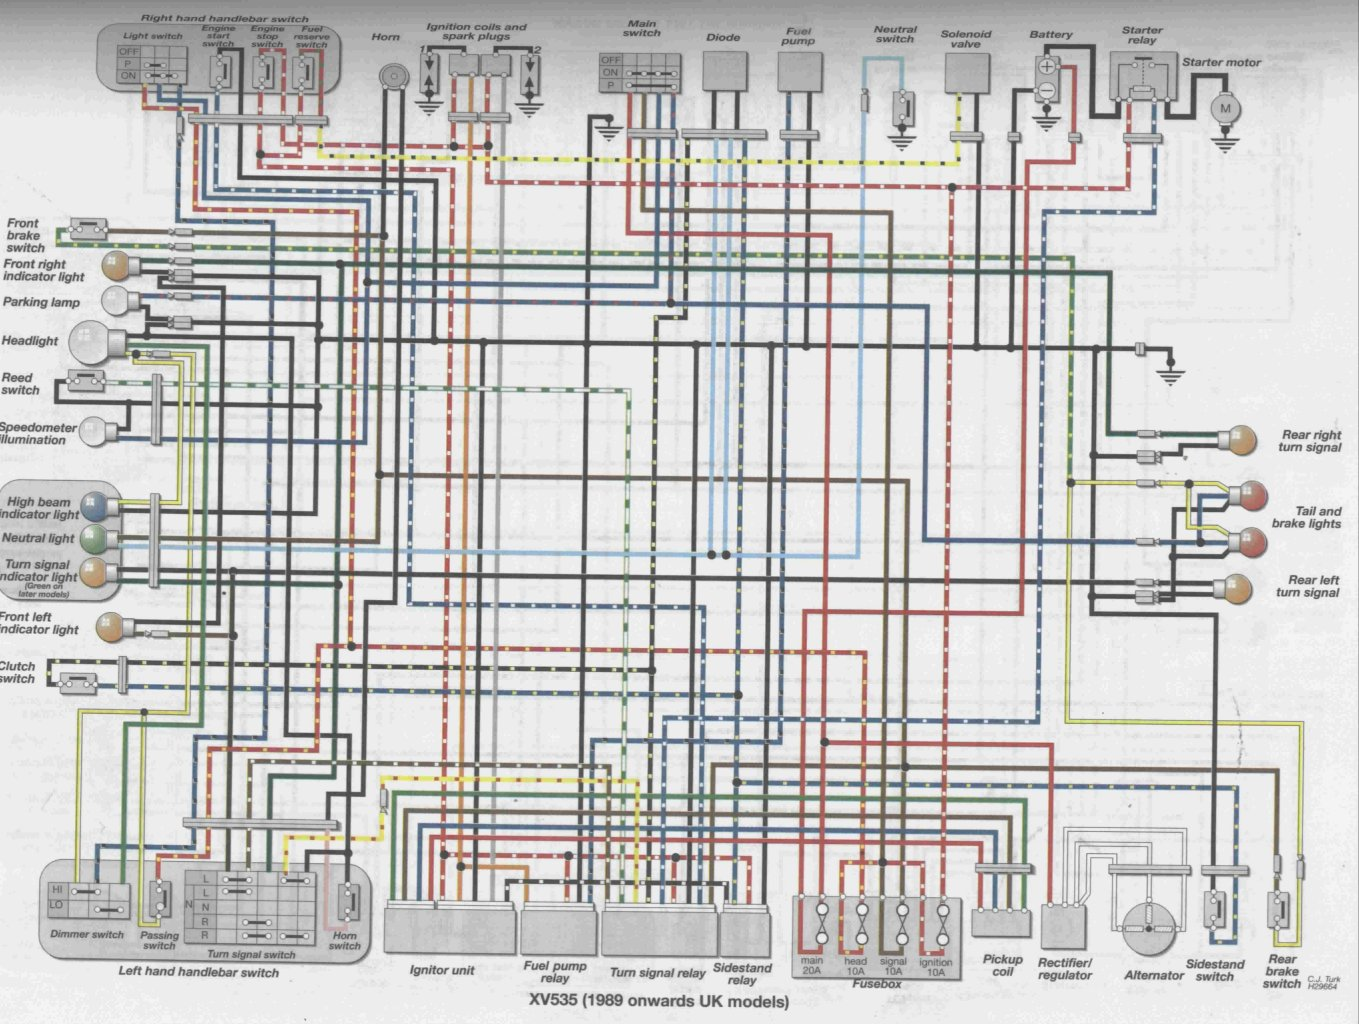 Famous 05 gsxr 600 wiring diagram composition electrical diagram modern wiring diagram suzuki gsxr 600 illustration everything you asfbconference2016 Choice Image